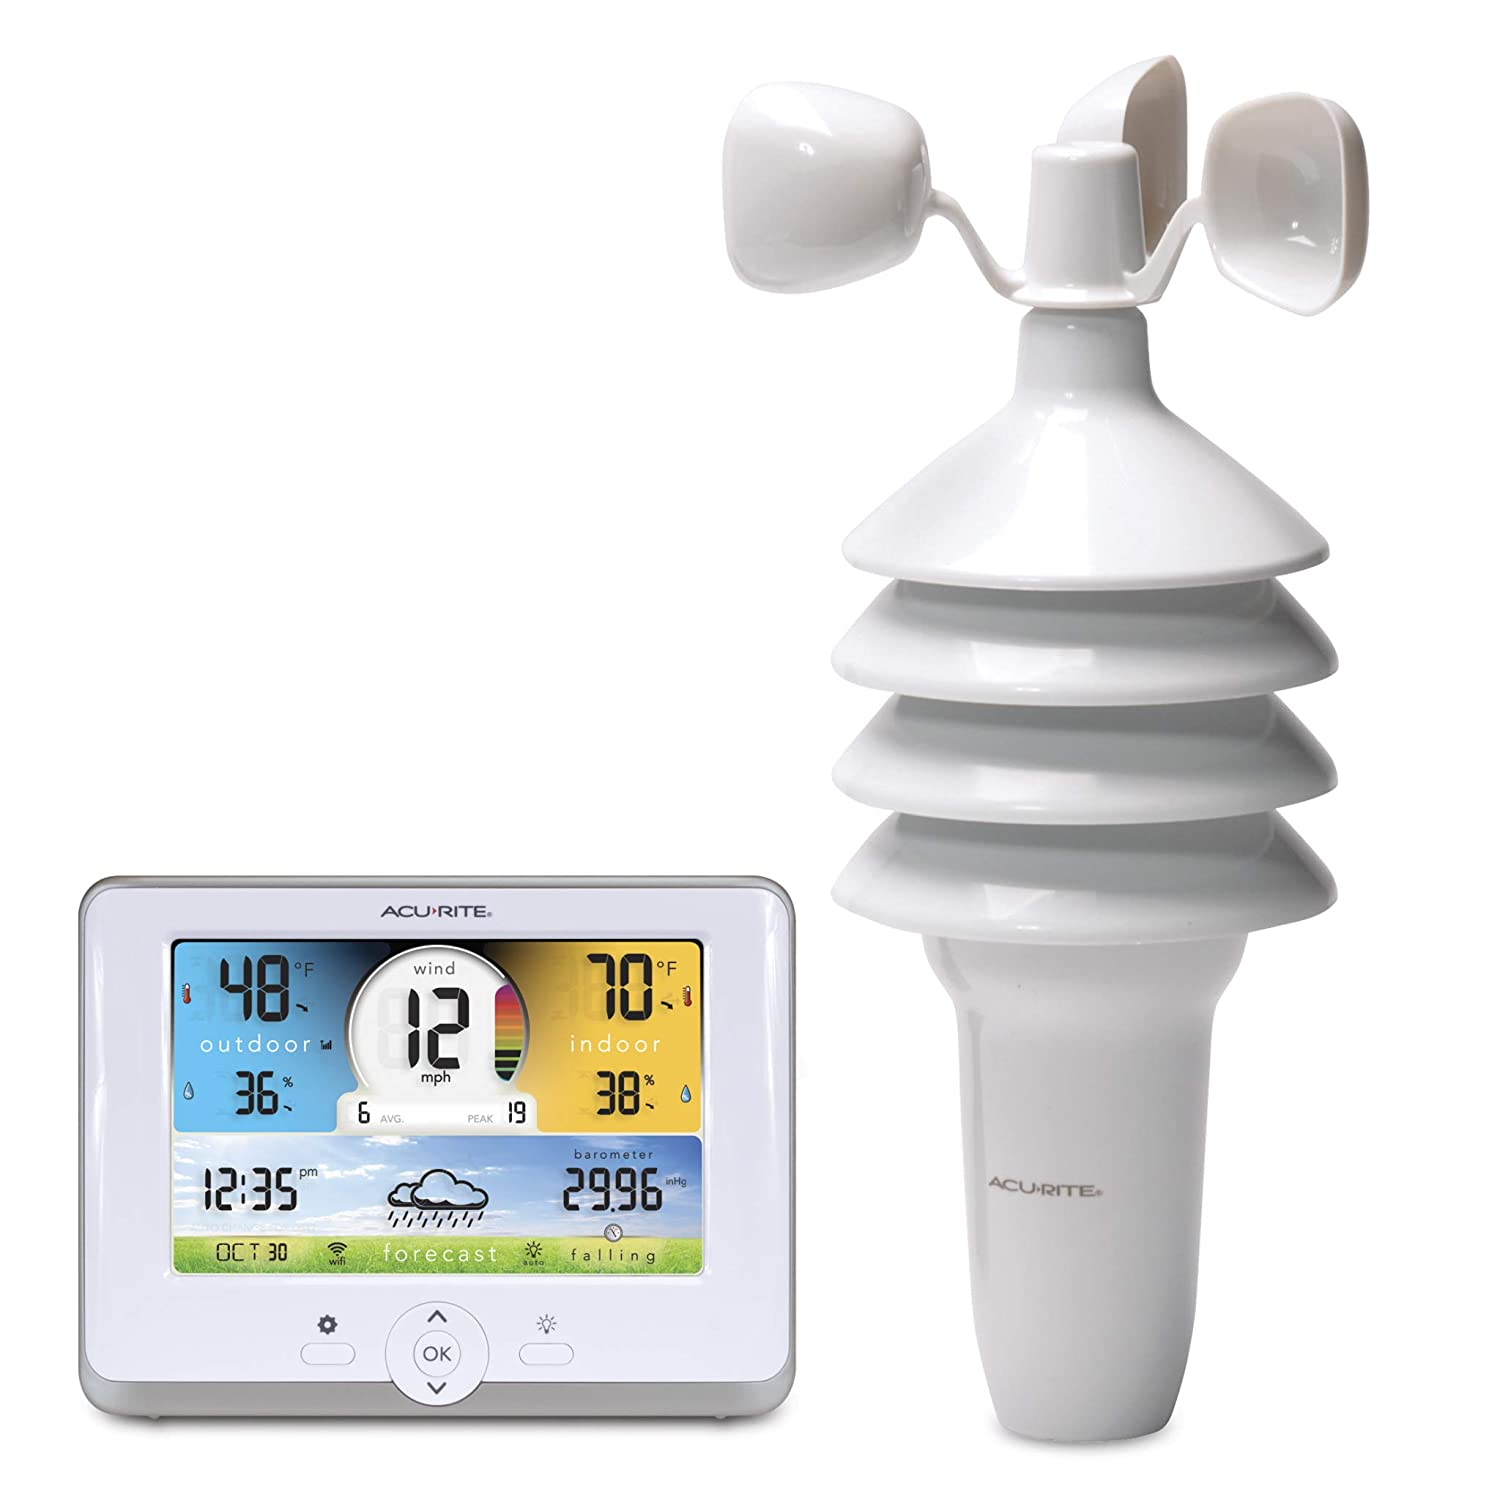 AcuRite 01530M 3-in-1 Weather Station with Wi-Fi Connection to Weather Underground